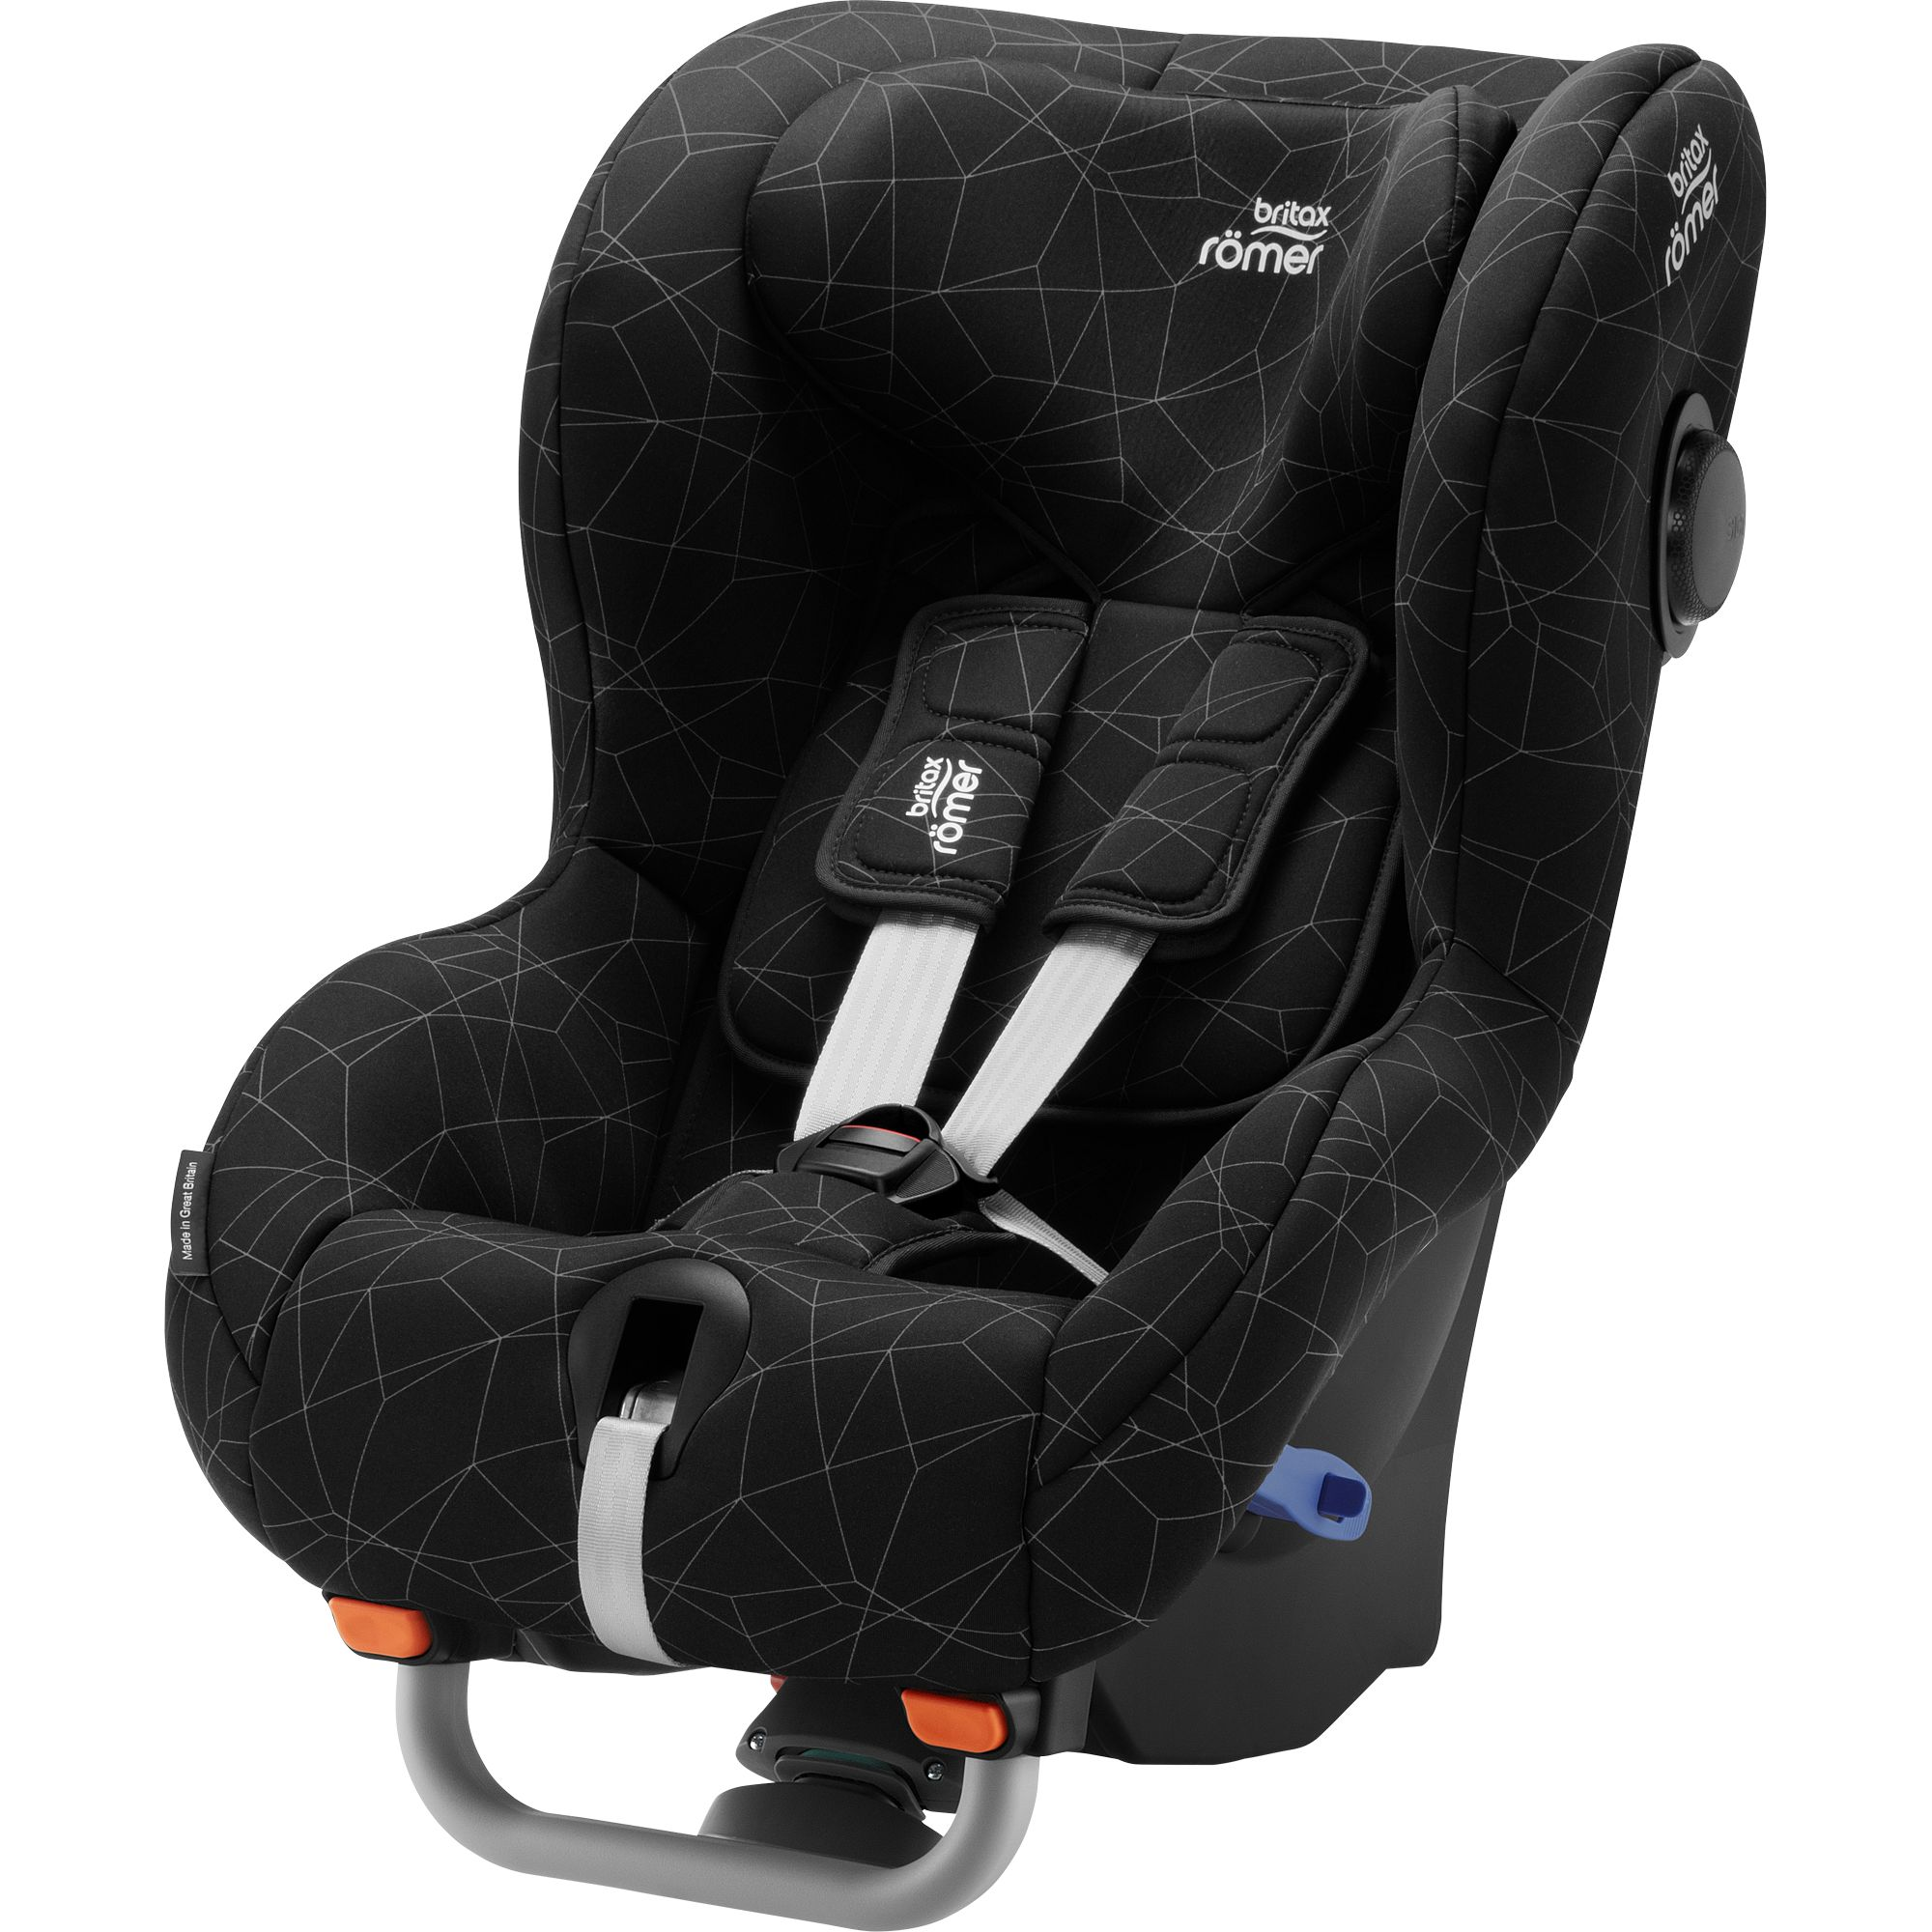 BRITAX Max-Way Plus Crystal Black 2020